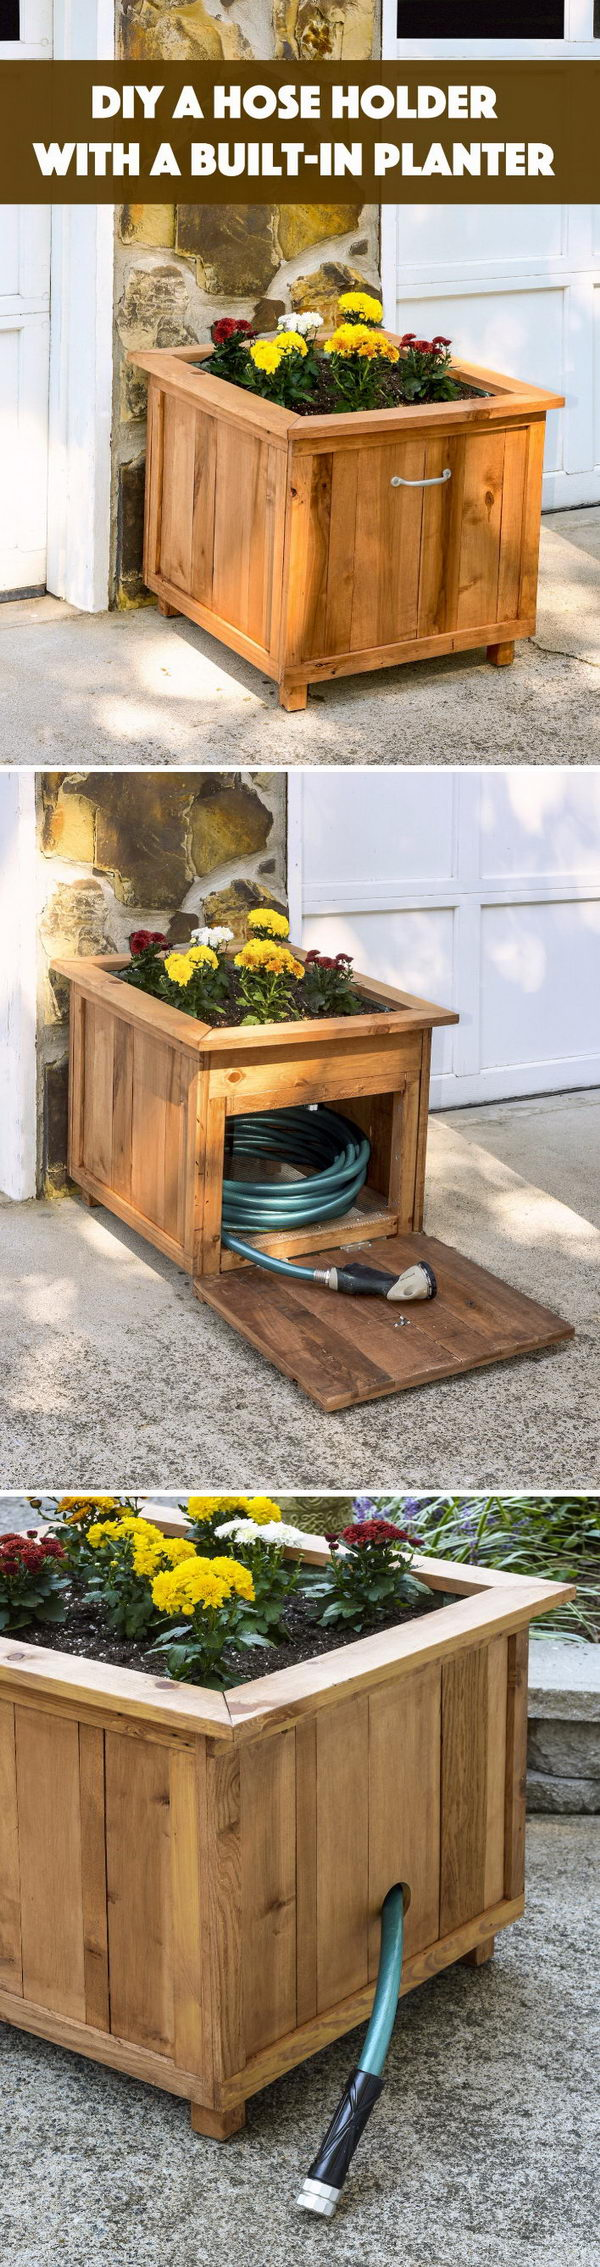 diy pallet wood hose holder with planter - Garden Ideas Using Wooden Pallets